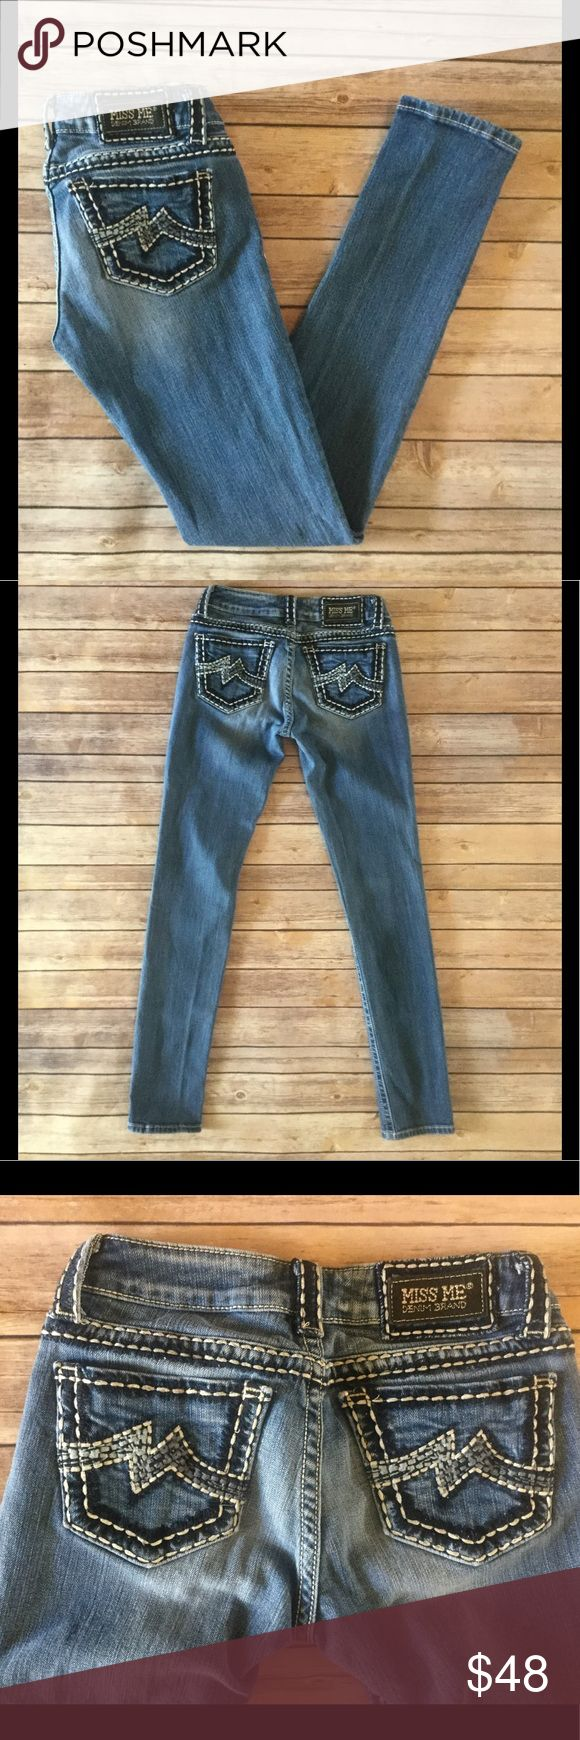 Miss Me Skinny Jeans Miss Me Skinny Jeans in very good condition. No flaws, zipper works.   Approximate measurements: Rise - 7 Waist - 14 Inseam - 32 Ankle - 6 (All measurements are taken with item laying flat.) Miss Me Jeans Skinny